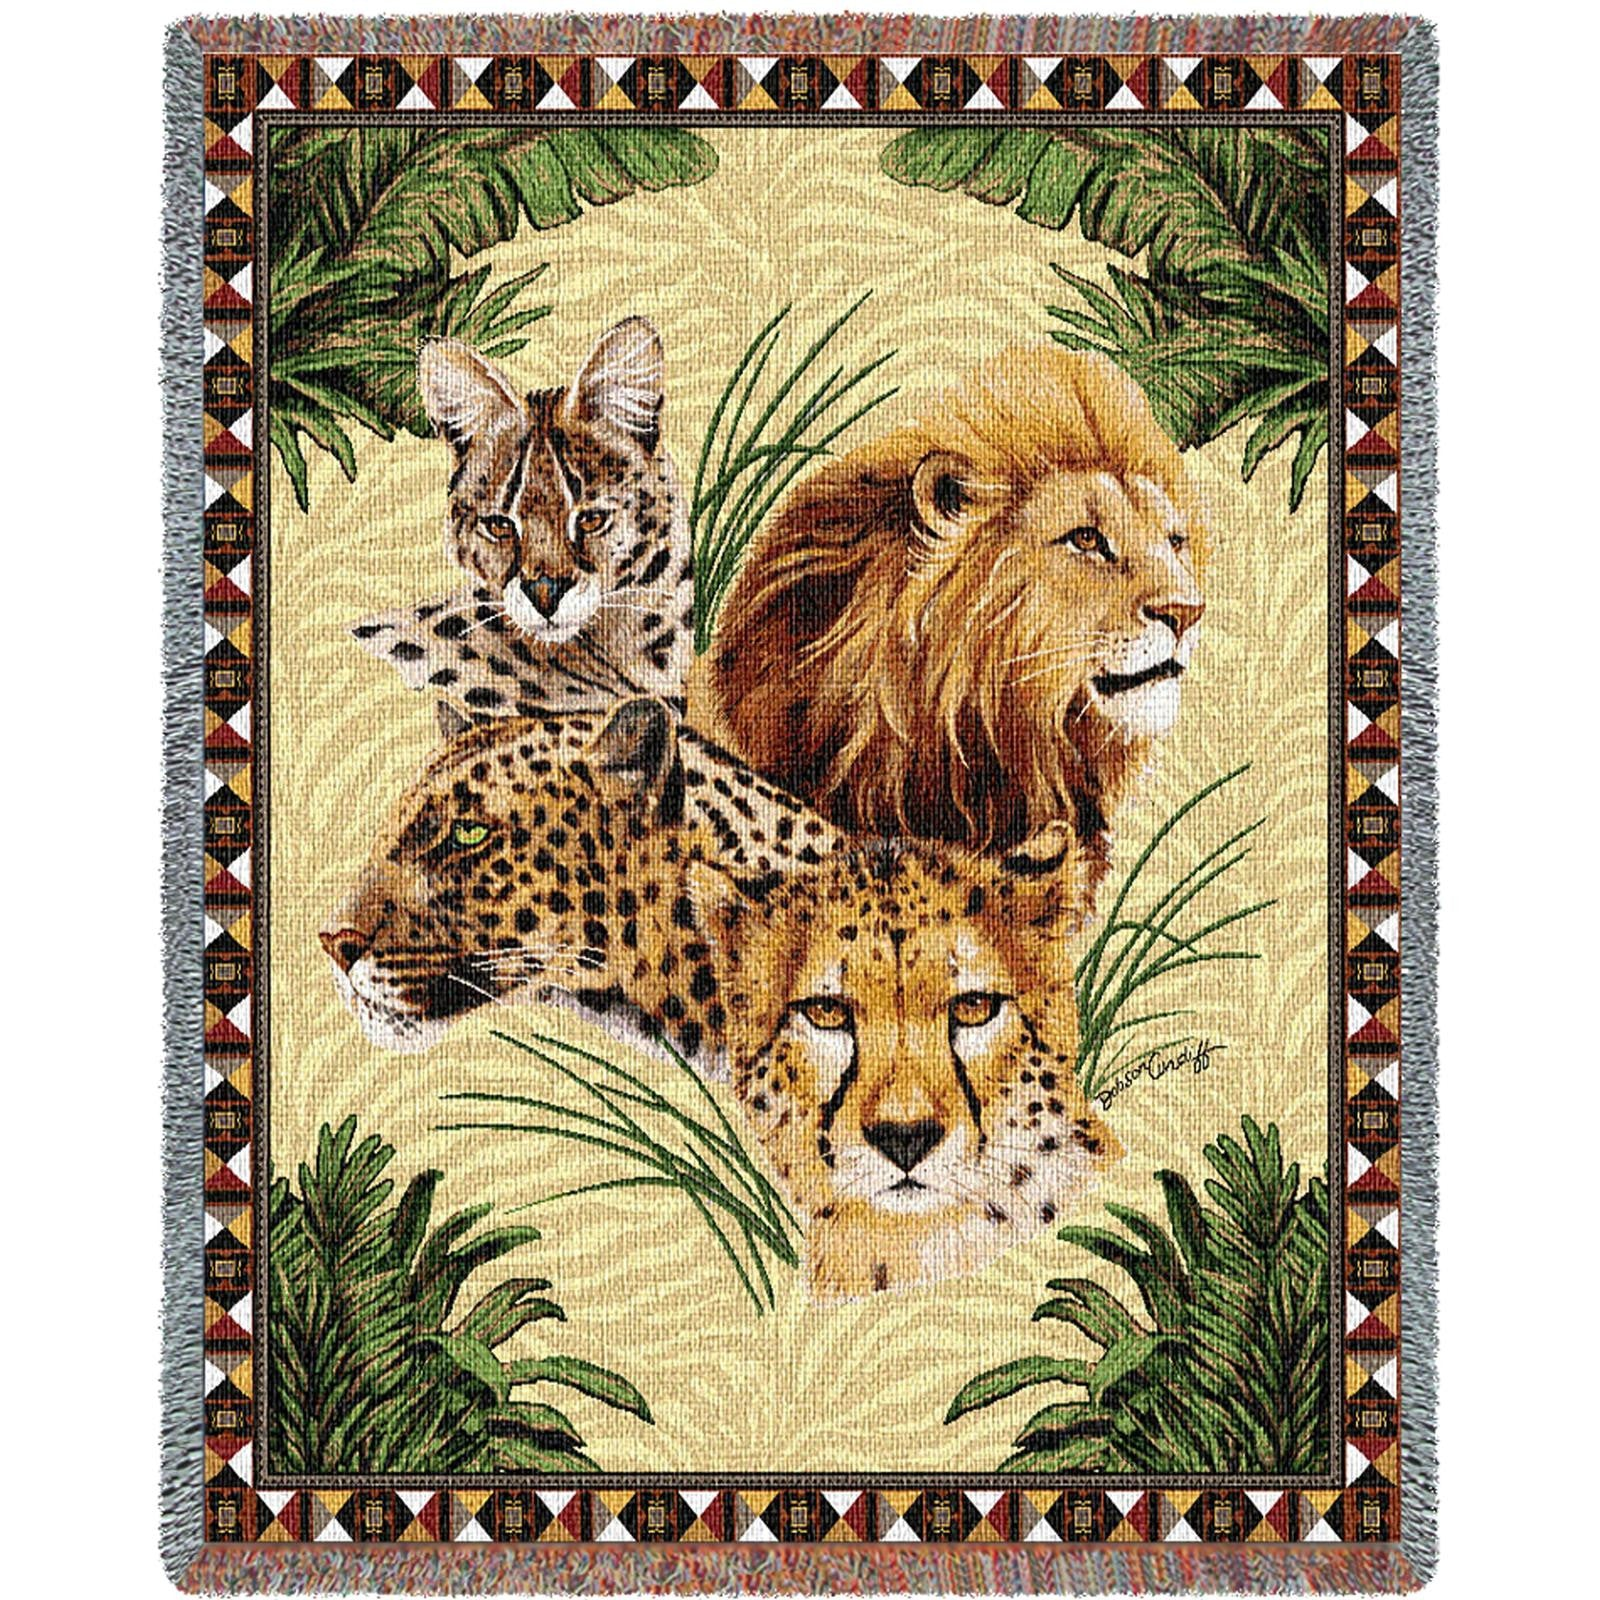 Big Cats (Tropical) Tapestry Throw